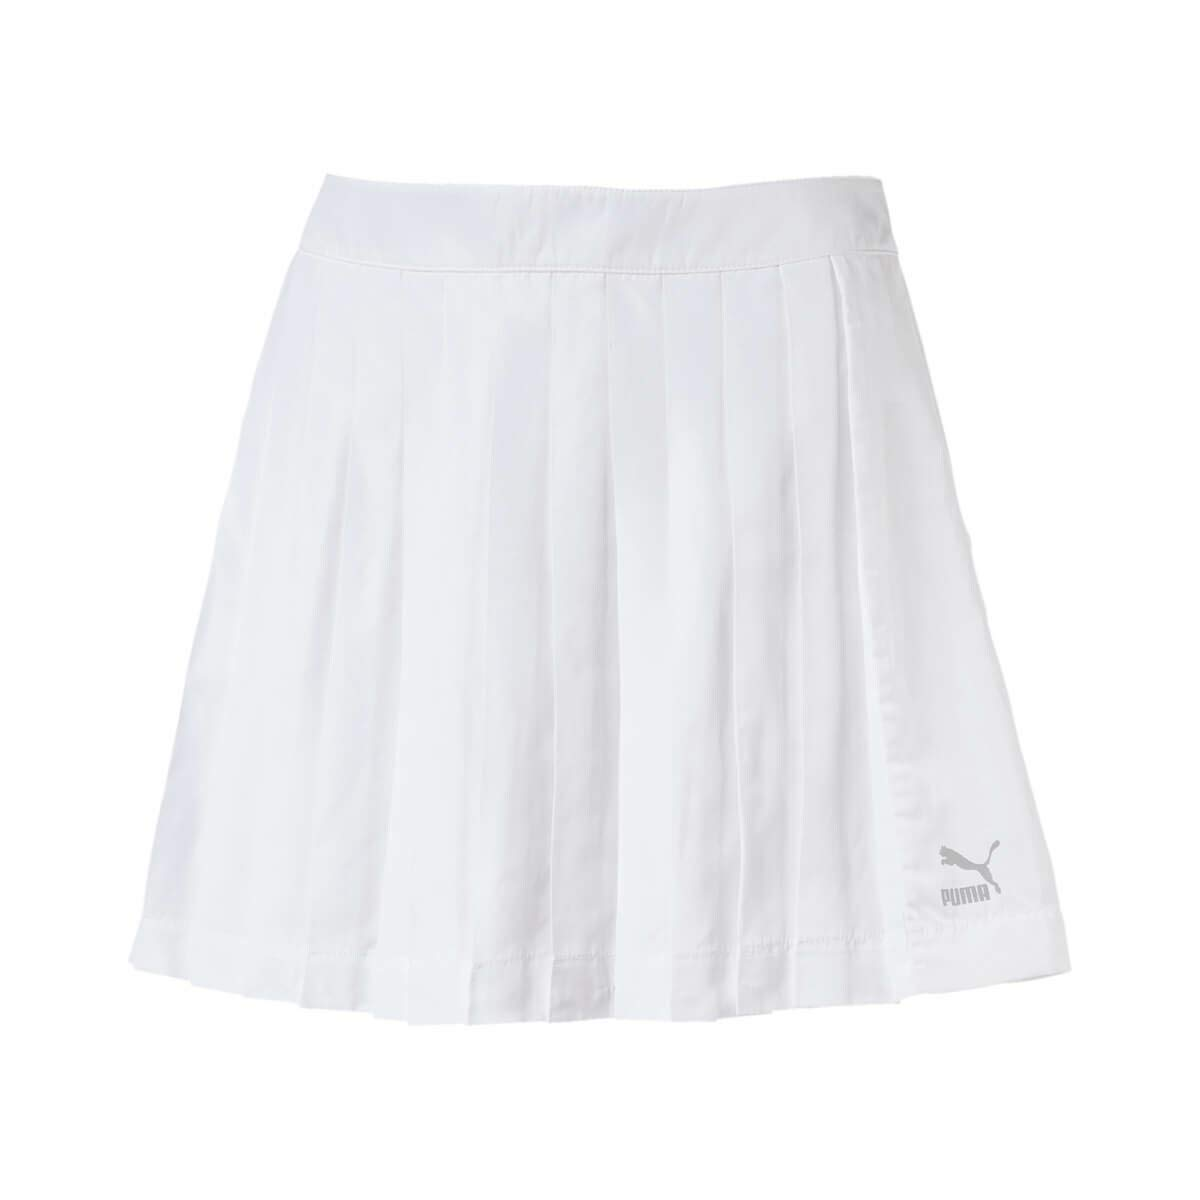 ff69fe1fc6 Puma Archive Pleats T7 Sport Skirt For Women, Small White: Amazon.ae